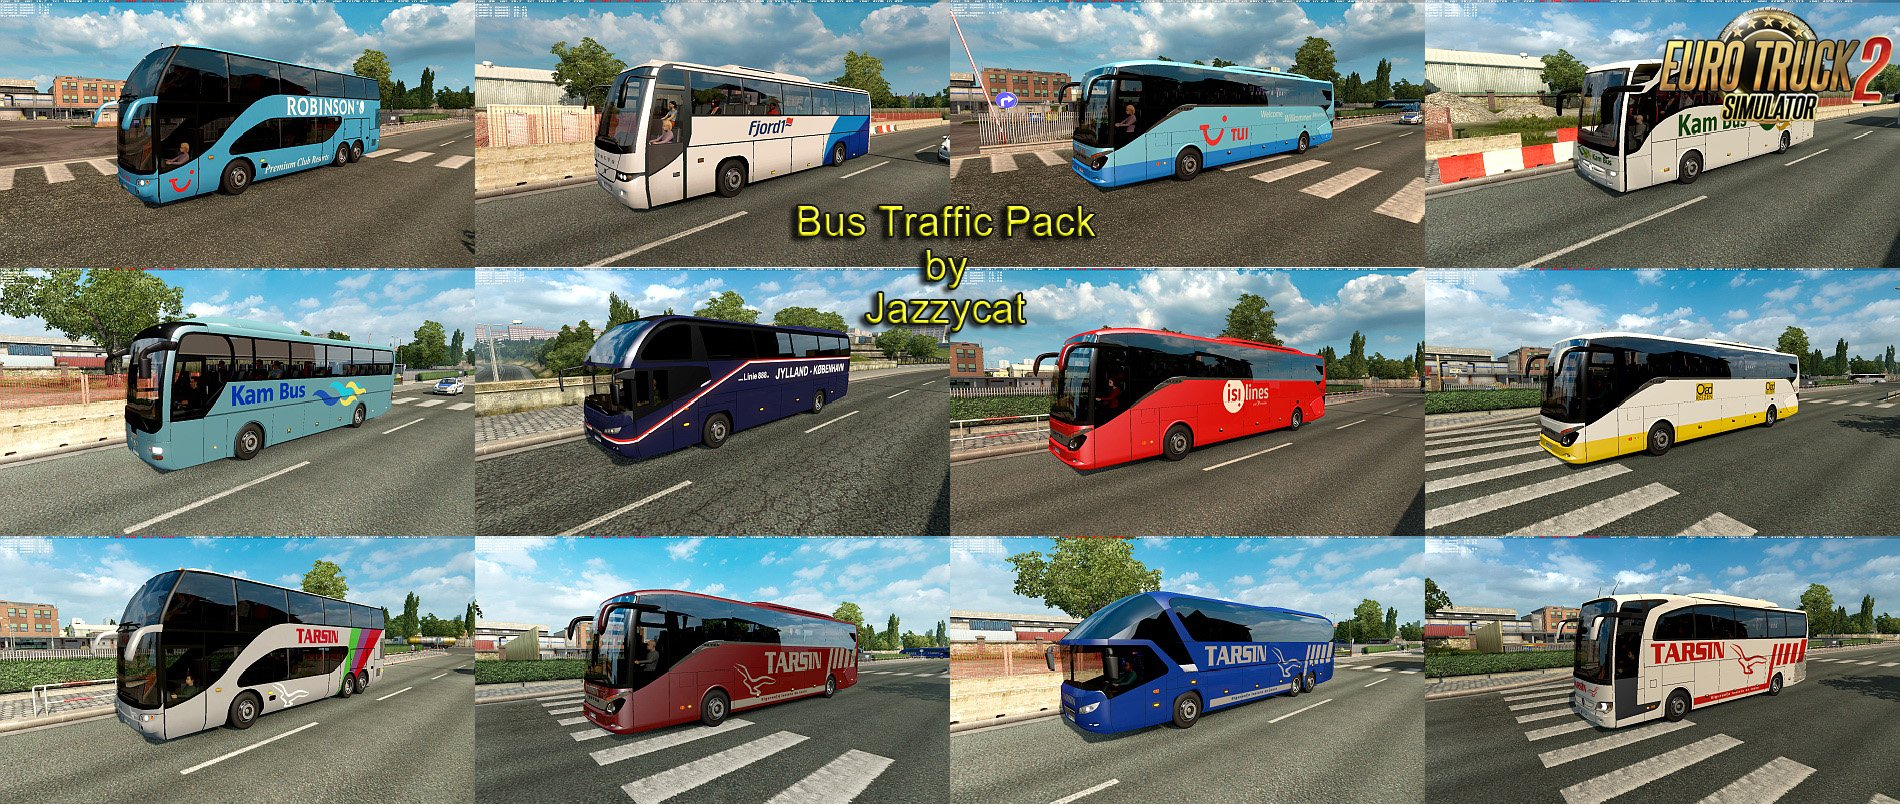 Bus Traffic Pack v2.9 by Jazzycat